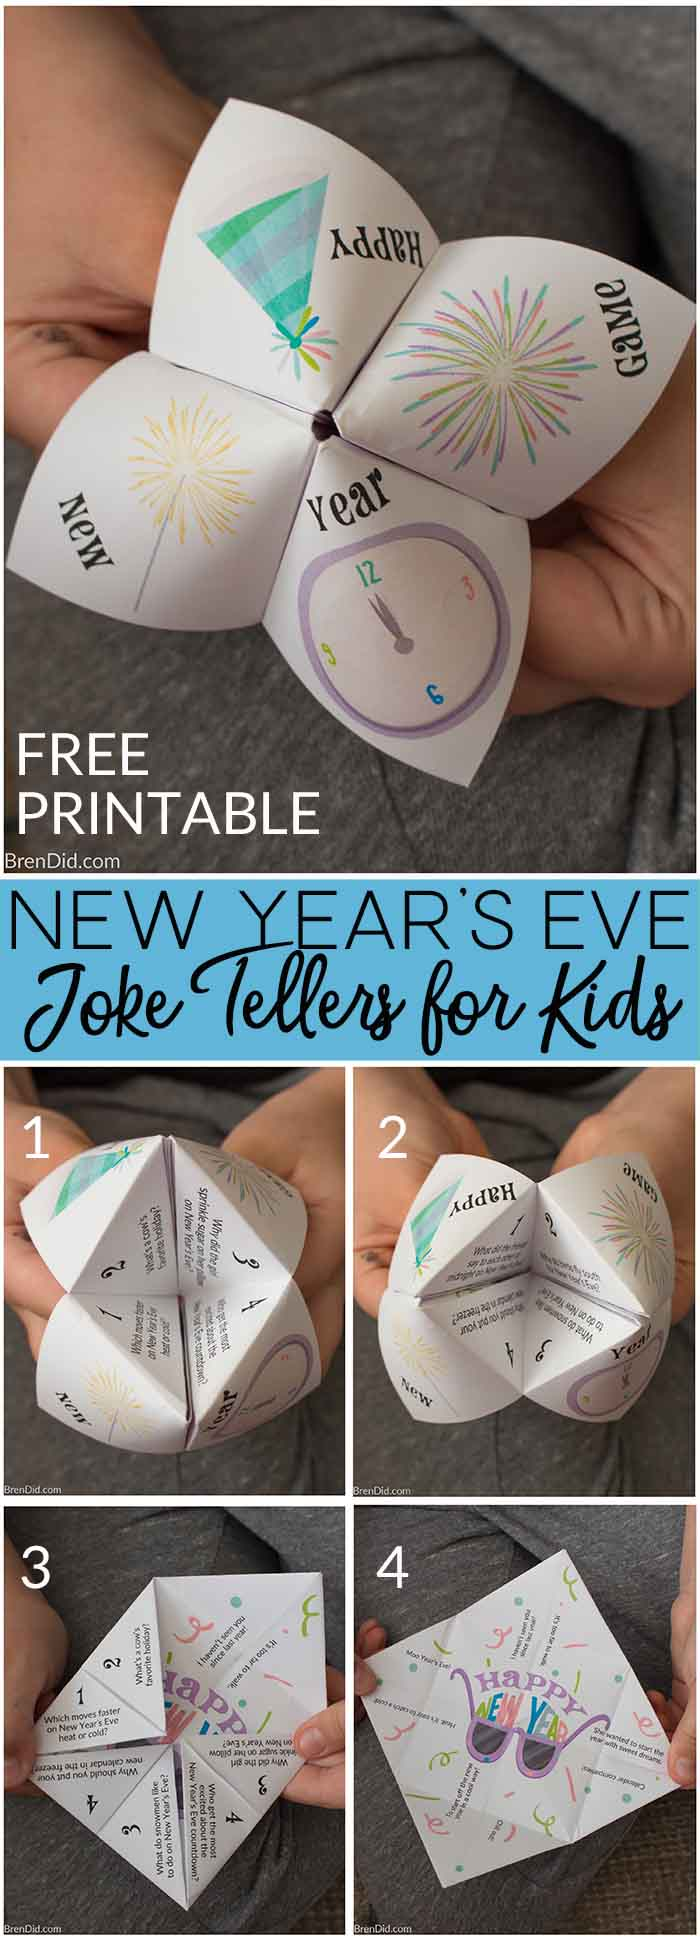 New Years Eve joke tellers | New Years Eve jokes | New Years Eve party | winter party | free printable | New Years Eve jokes for kids |  cootie catcher |  fortune teller #NewYearsEve #StreamTeam #joketeller